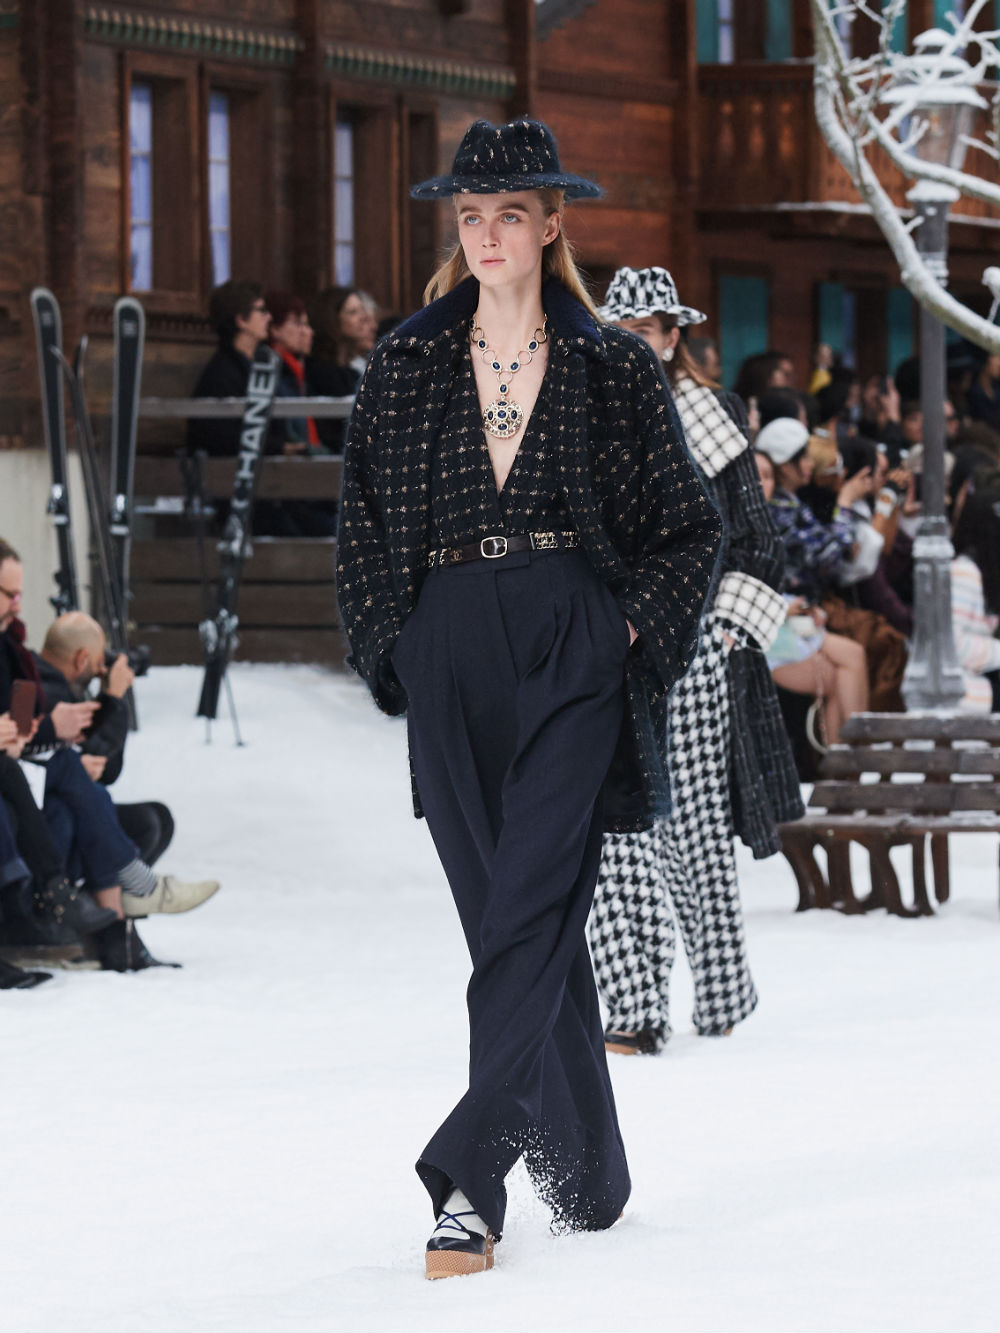 FALL-WINTER 201920 READY-TO-WEAR COLLECTION (4)